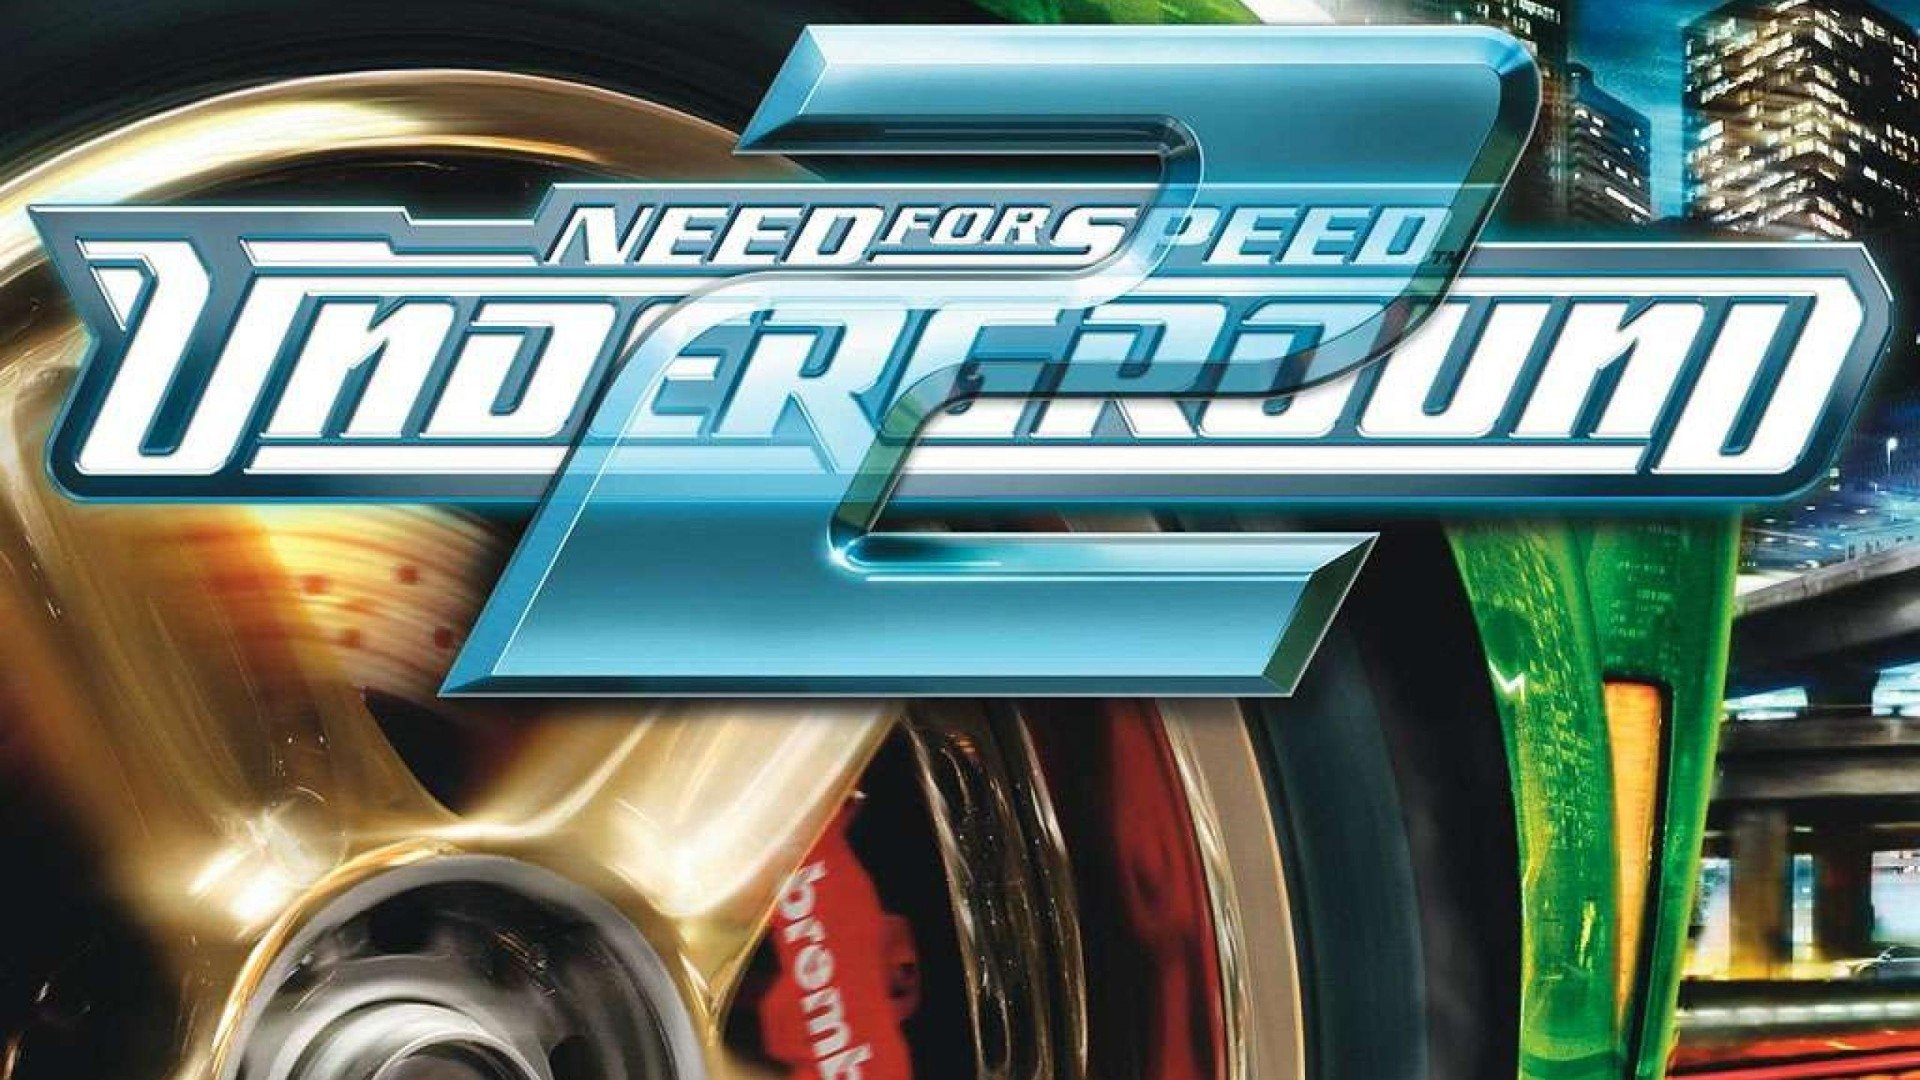 7 Need For Speed Underground 2 Hd Wallpapers Background Images